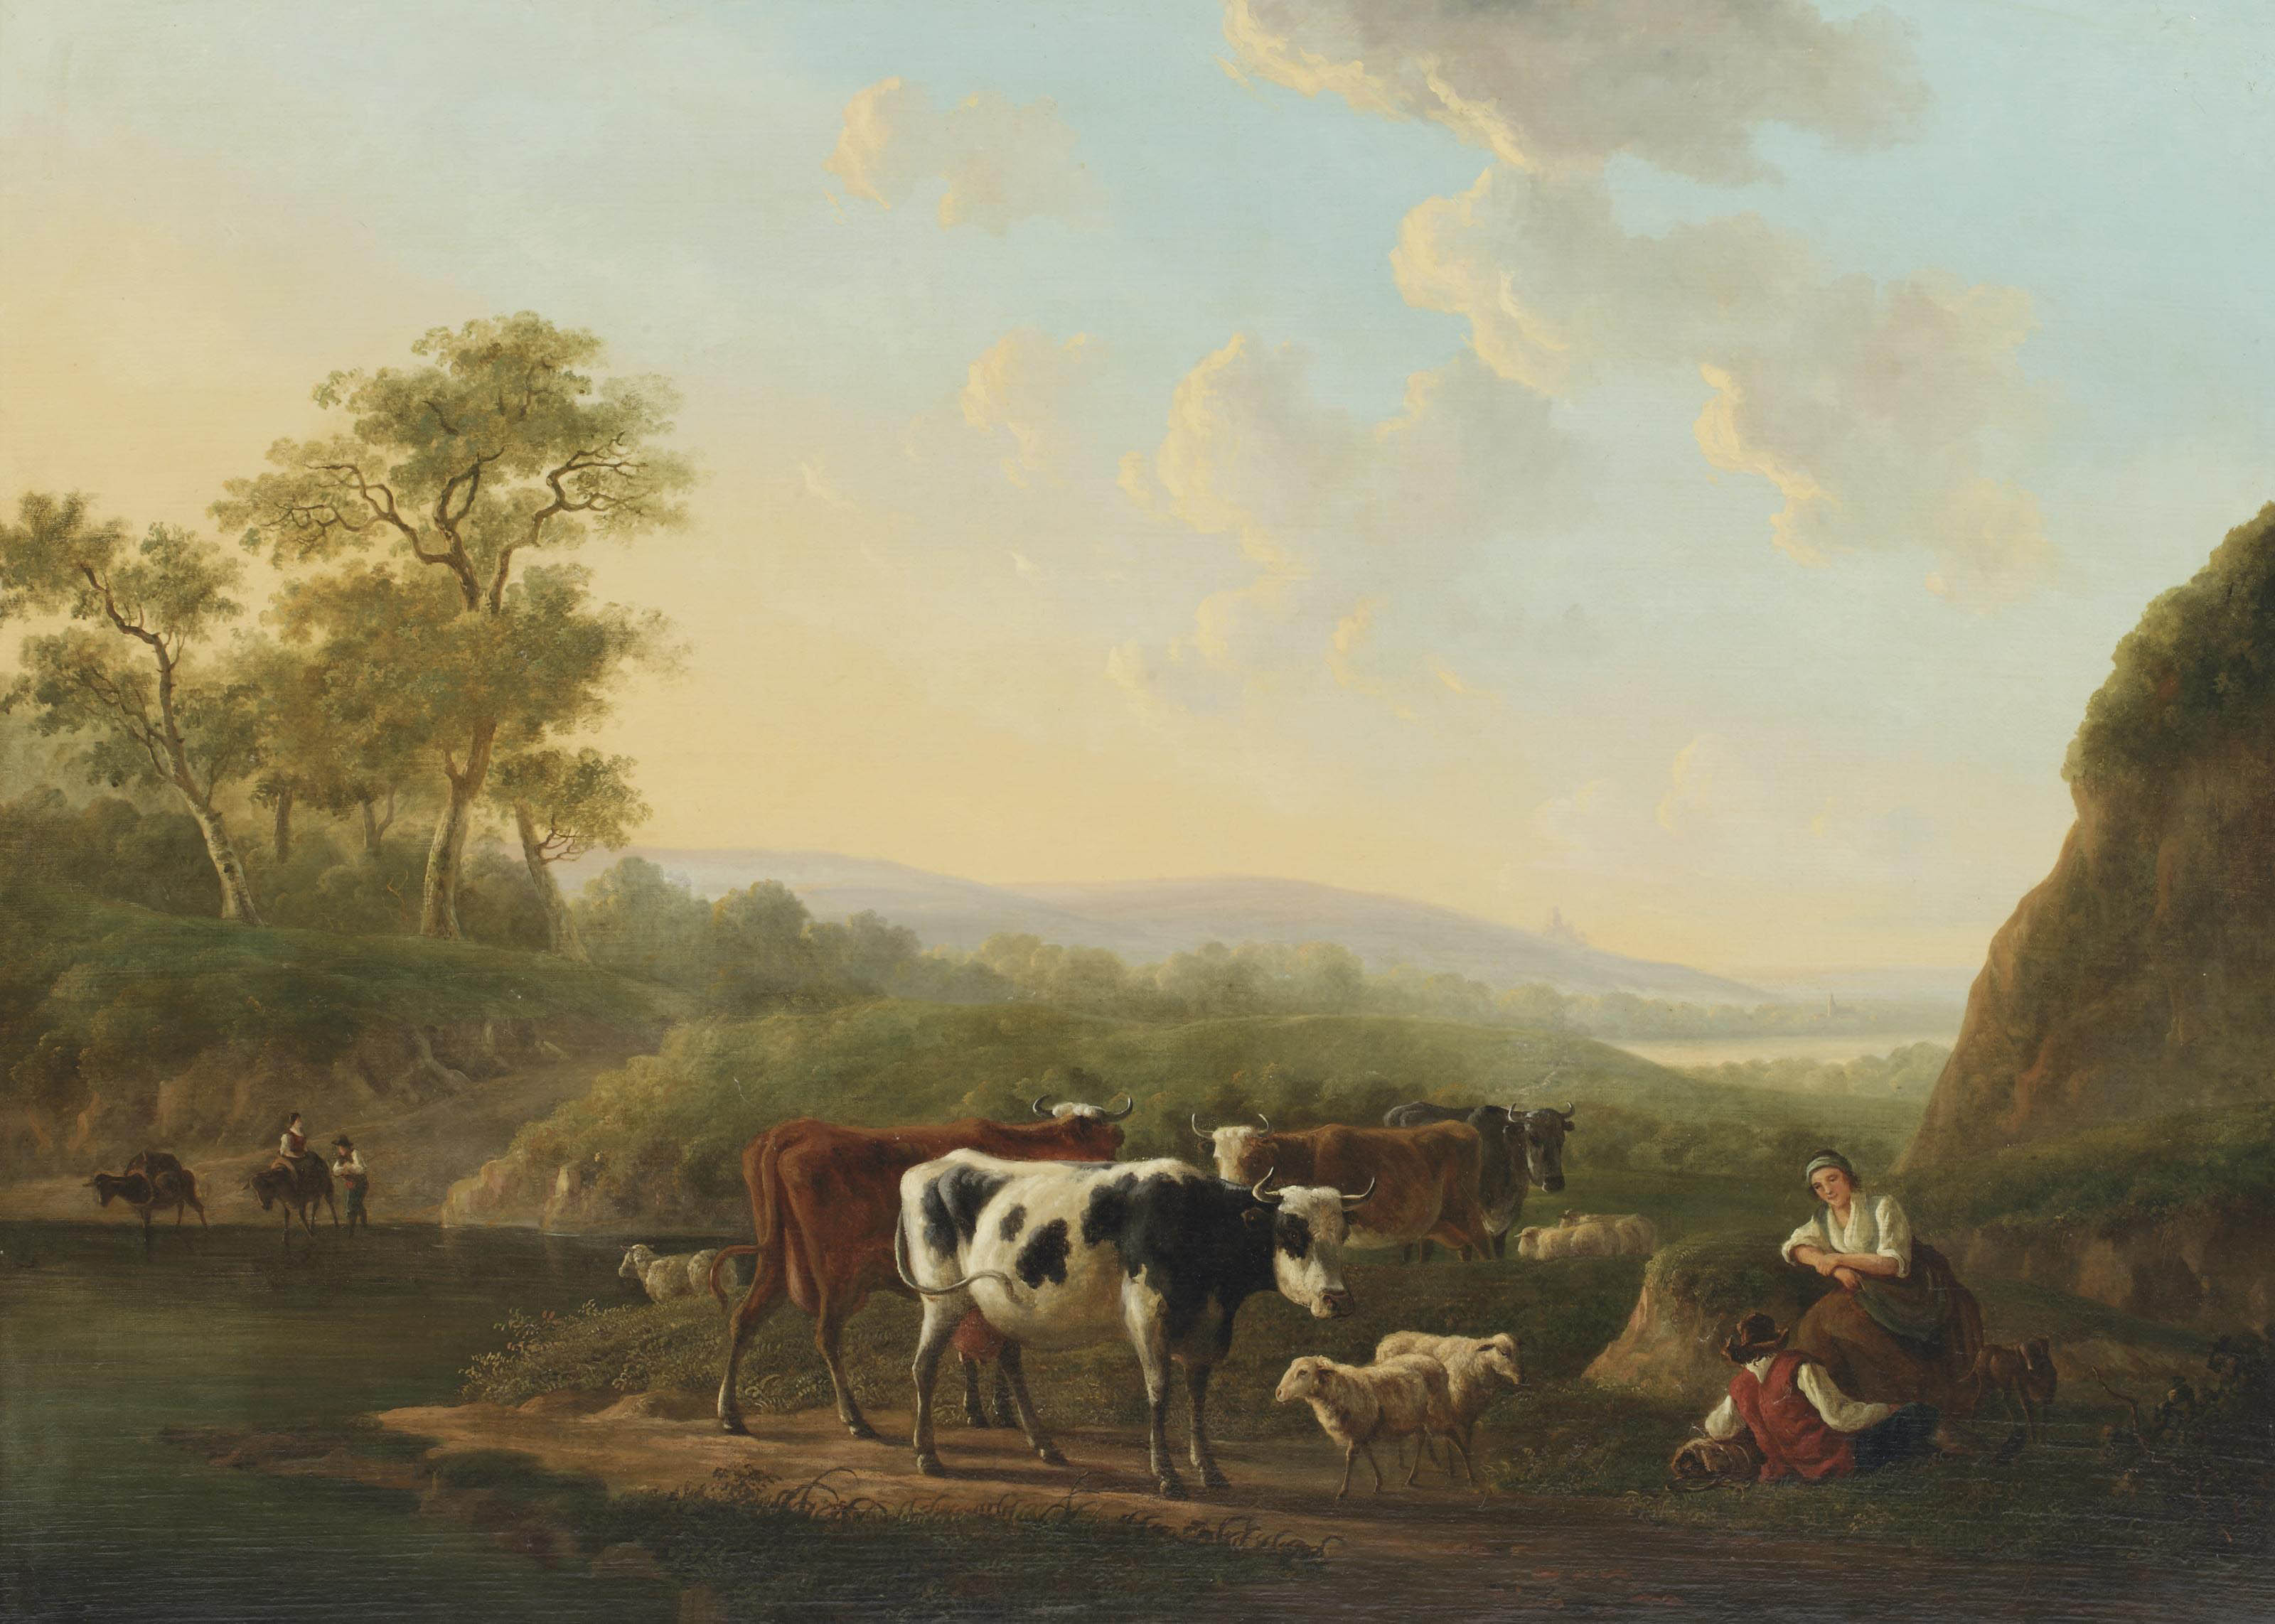 A hilly landscape with a shepherd couple and their cattle on a path